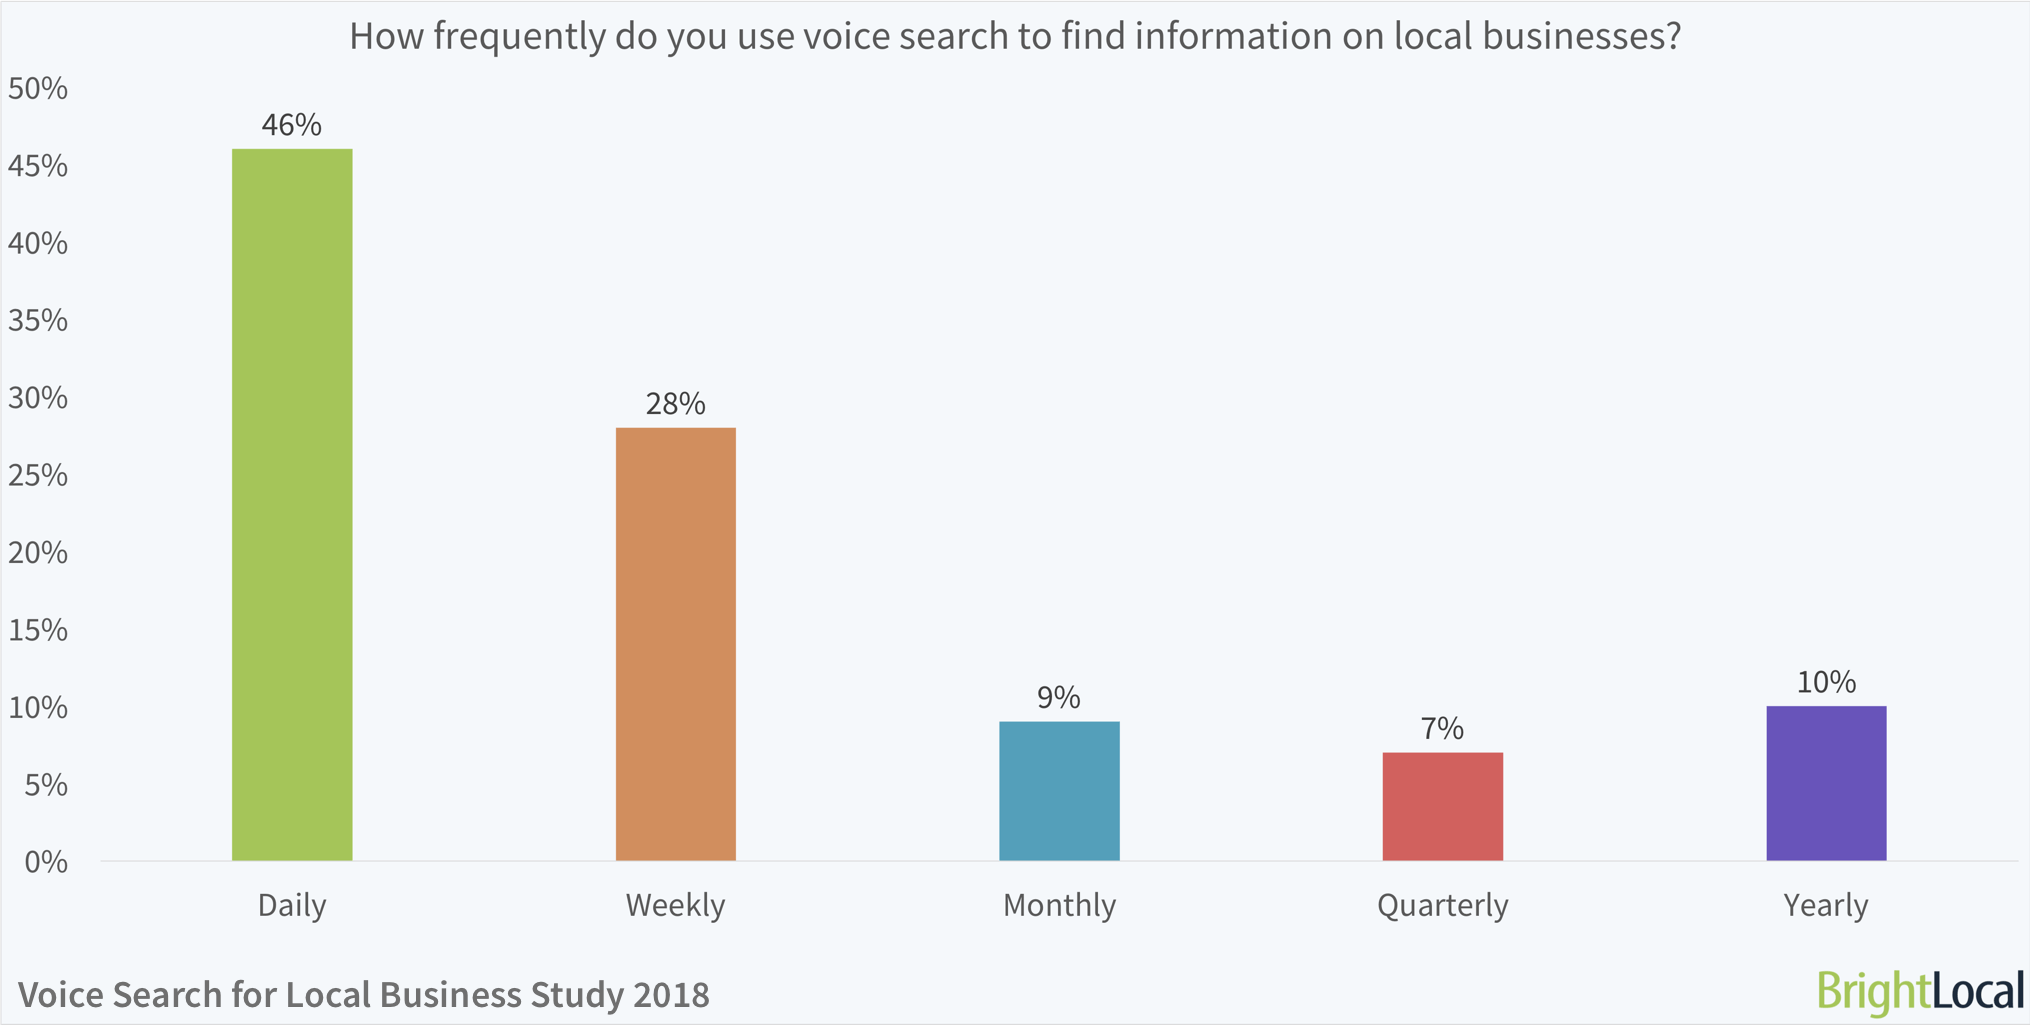 How frequently do you use voice search to find information on local businesses? | BrightLocal Voice Search for Local Businesses Study